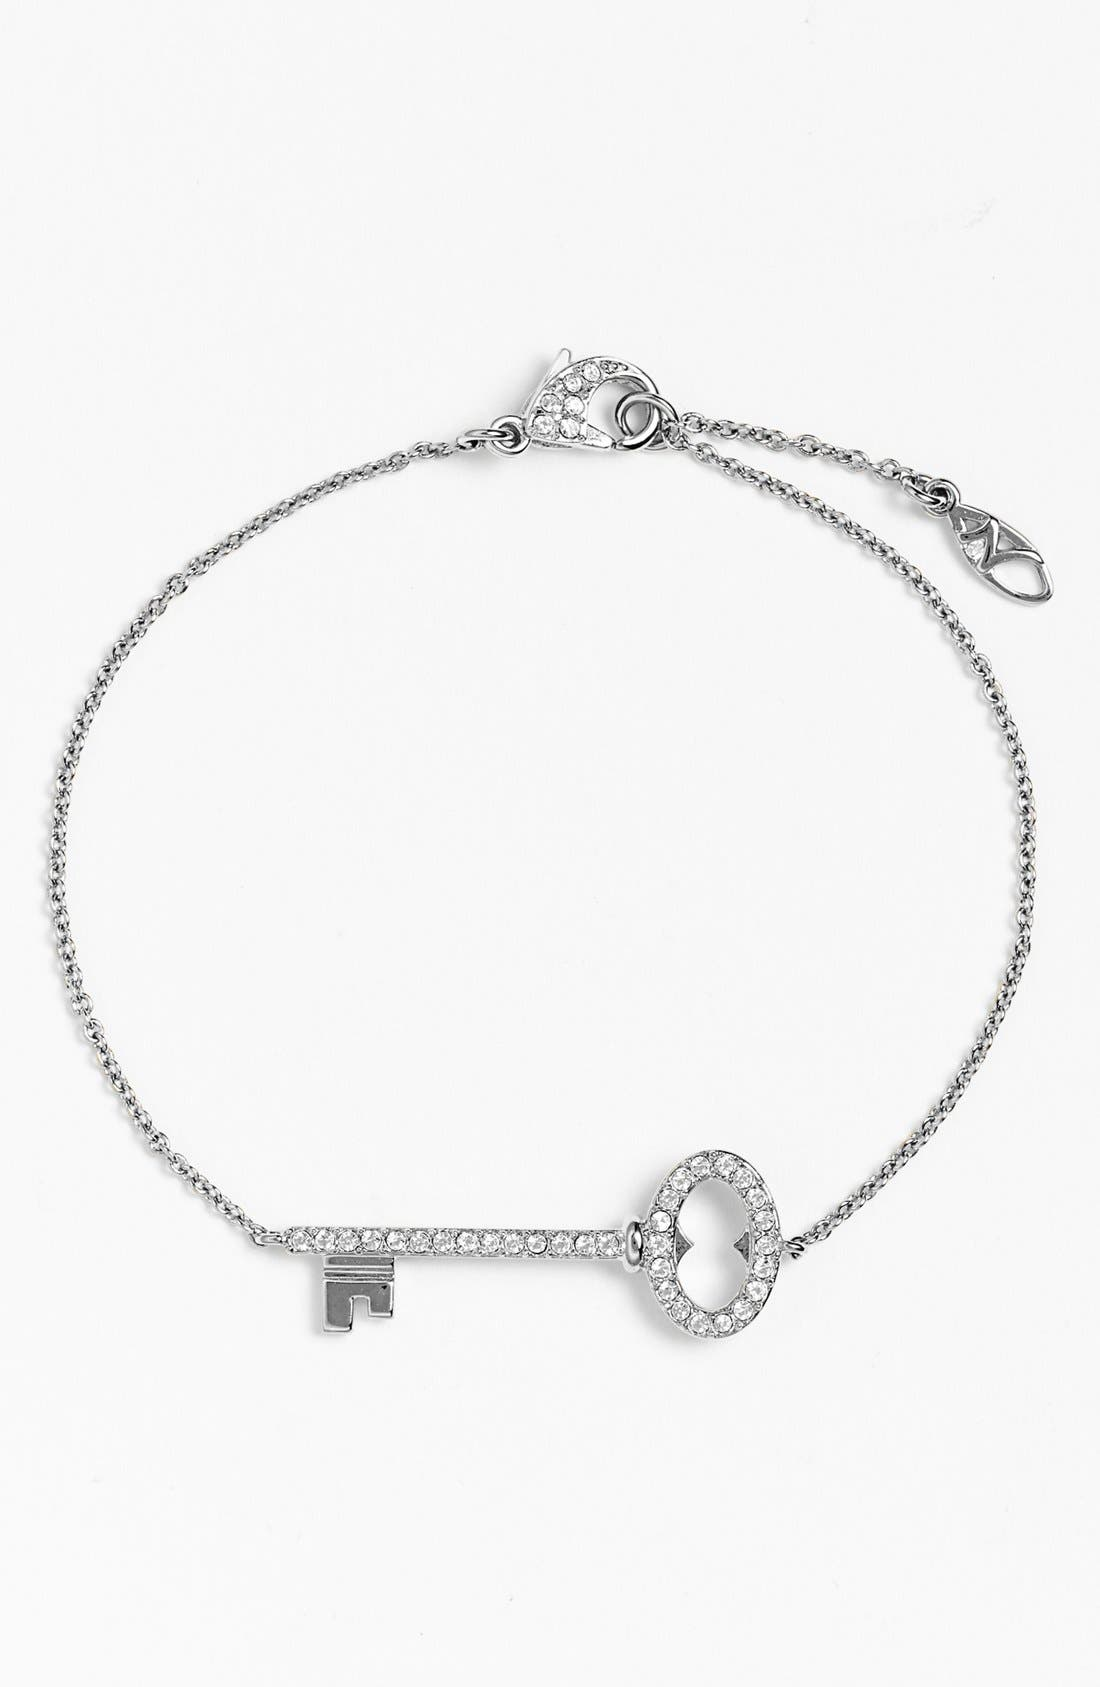 Alternate Image 1 Selected - Nadri Key Station Bracelet (Nordstrom Exclusive)